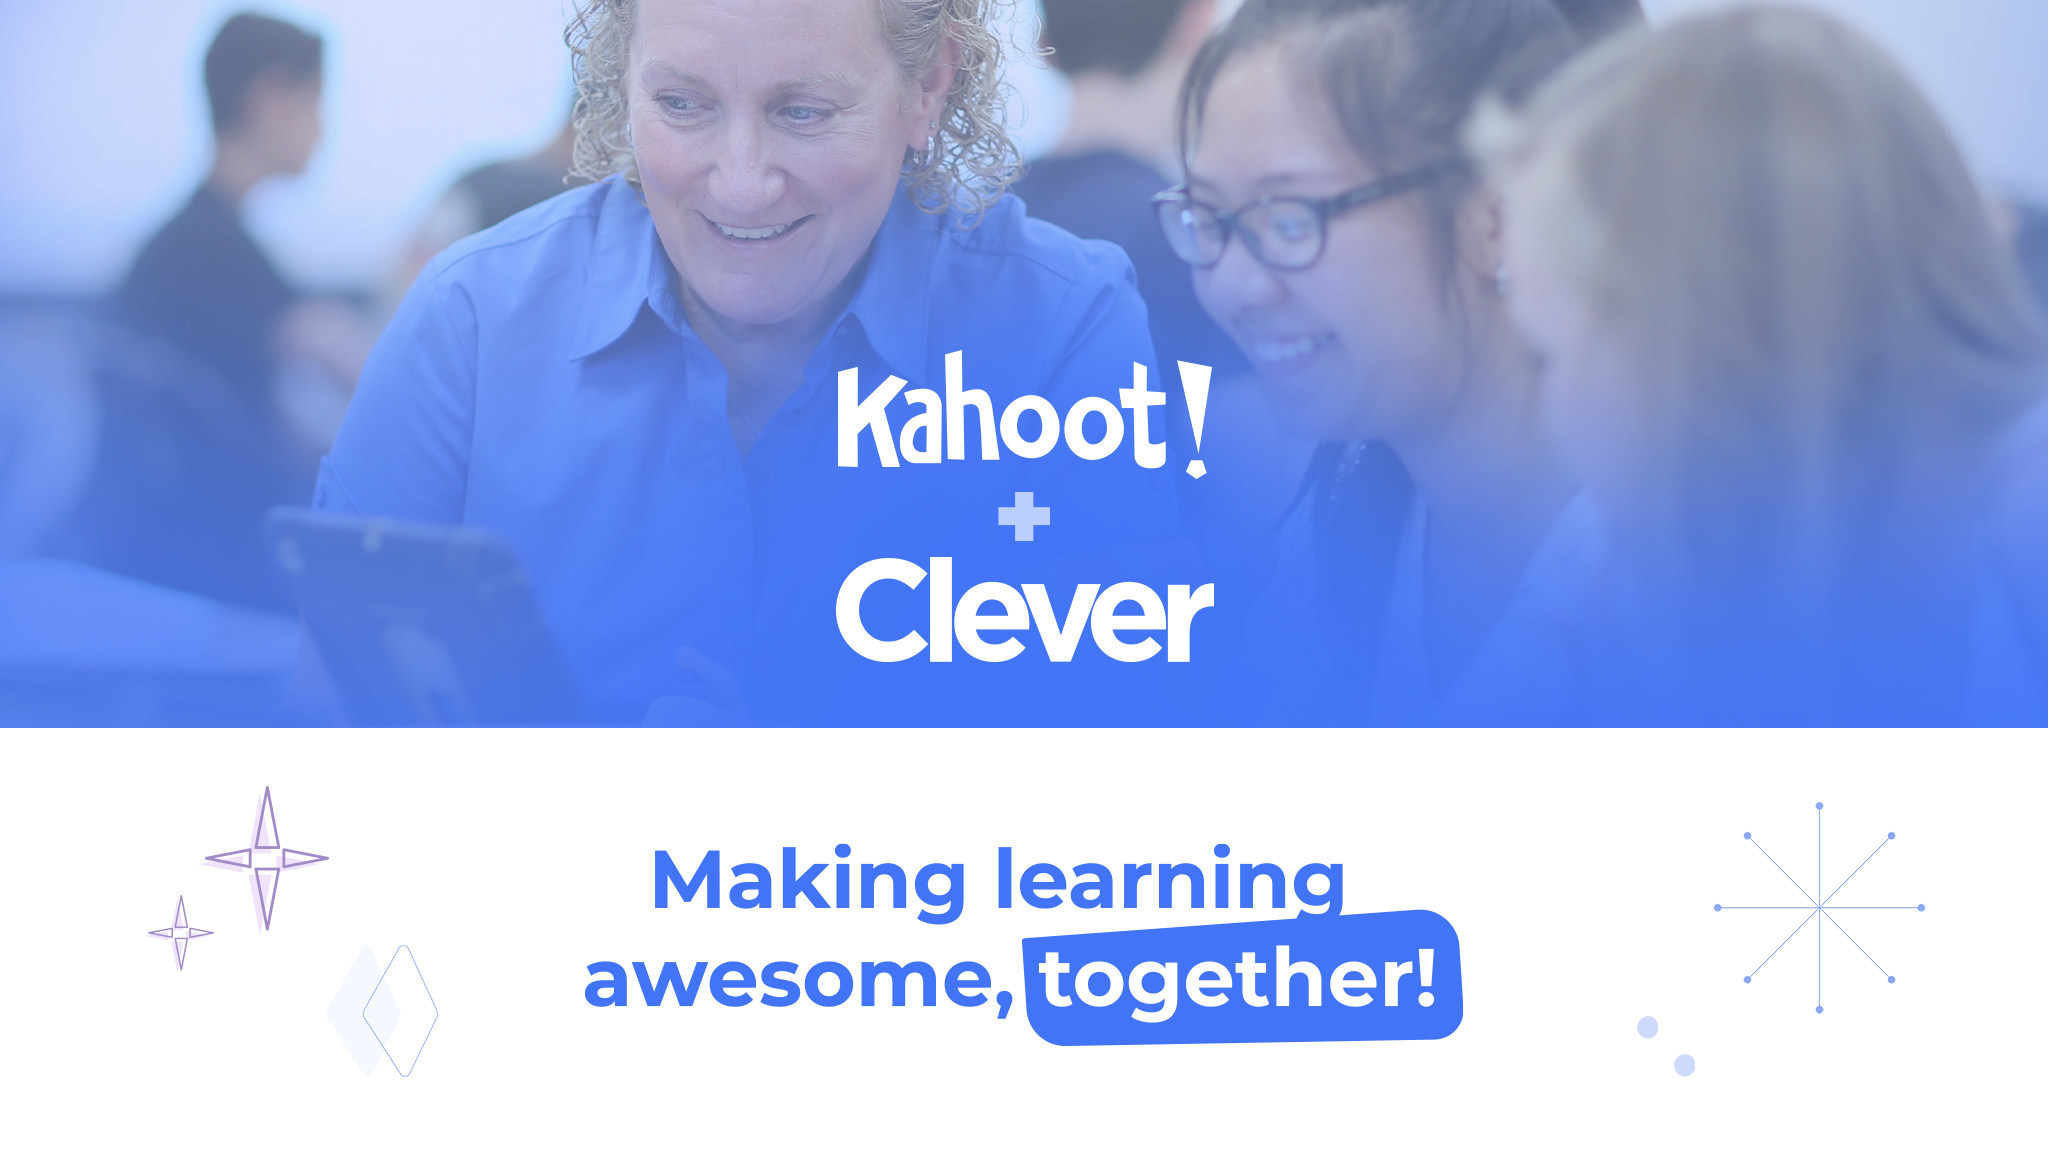 Kahoot! Completes Acquisition of Leading US K-12 Edtech Learning Platform Clever